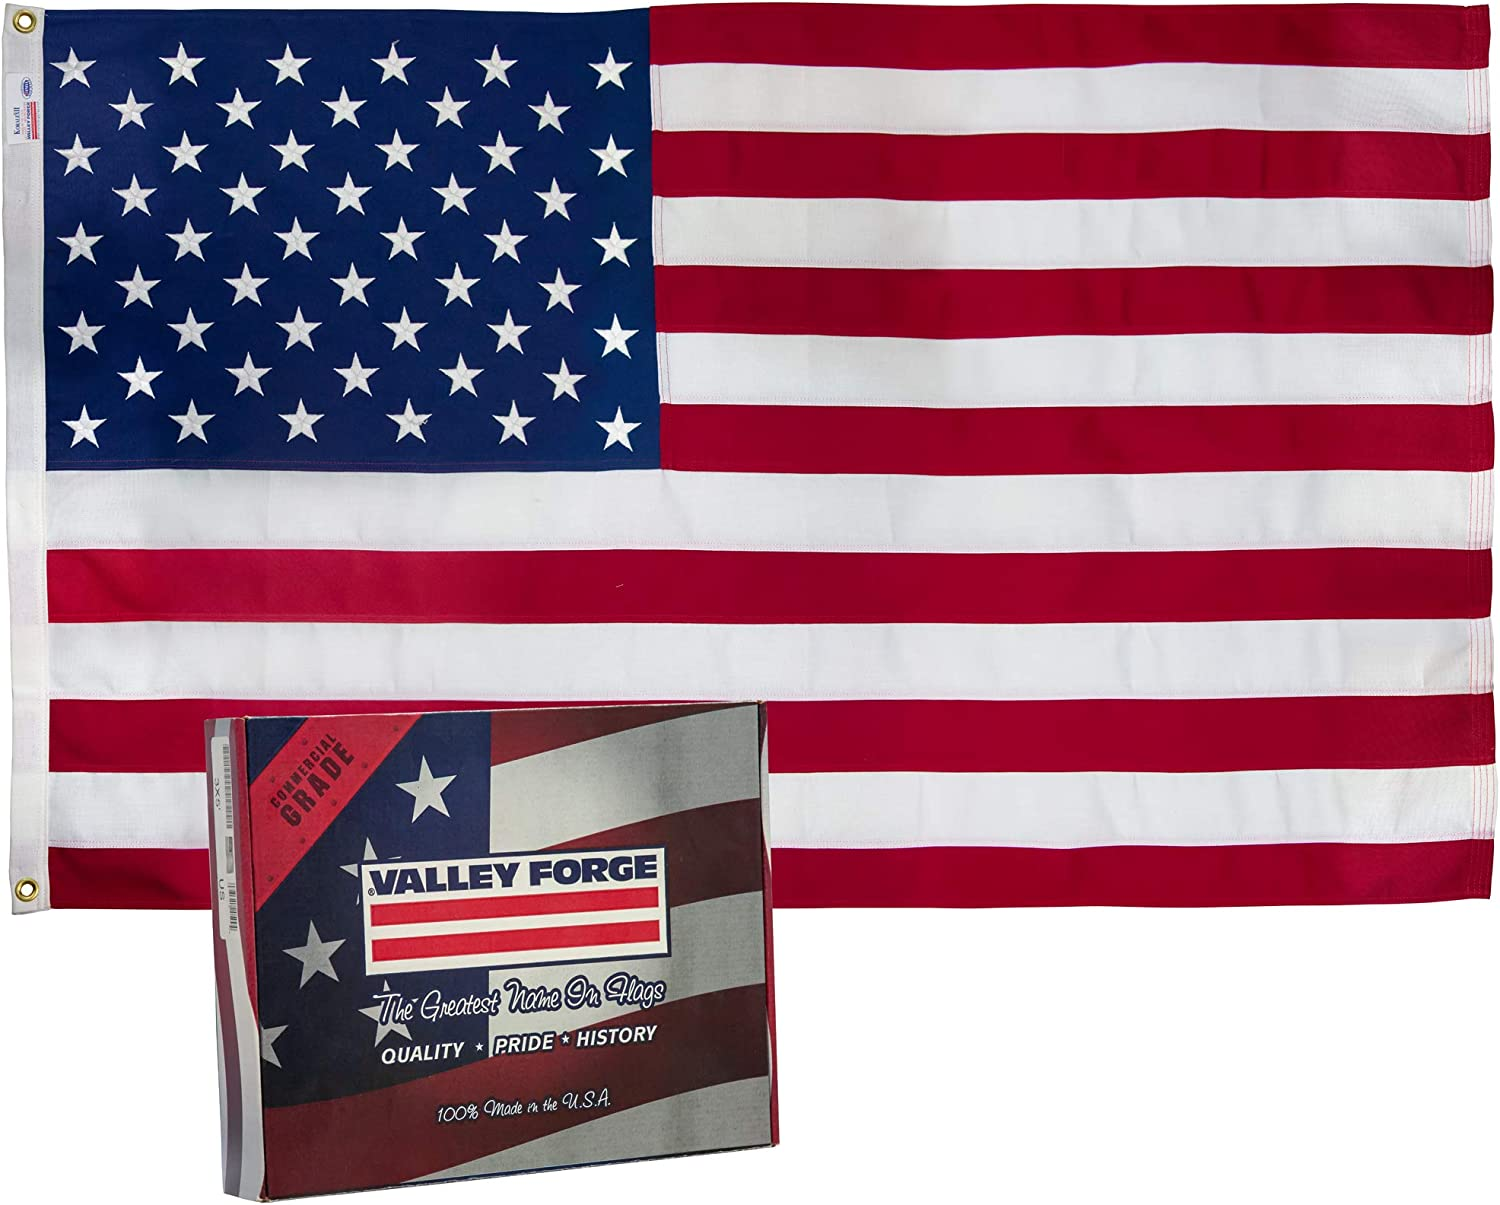 Valley Forge Flag 3 x 5 Foot Standard 2Ply Spun Polyester US American Flag